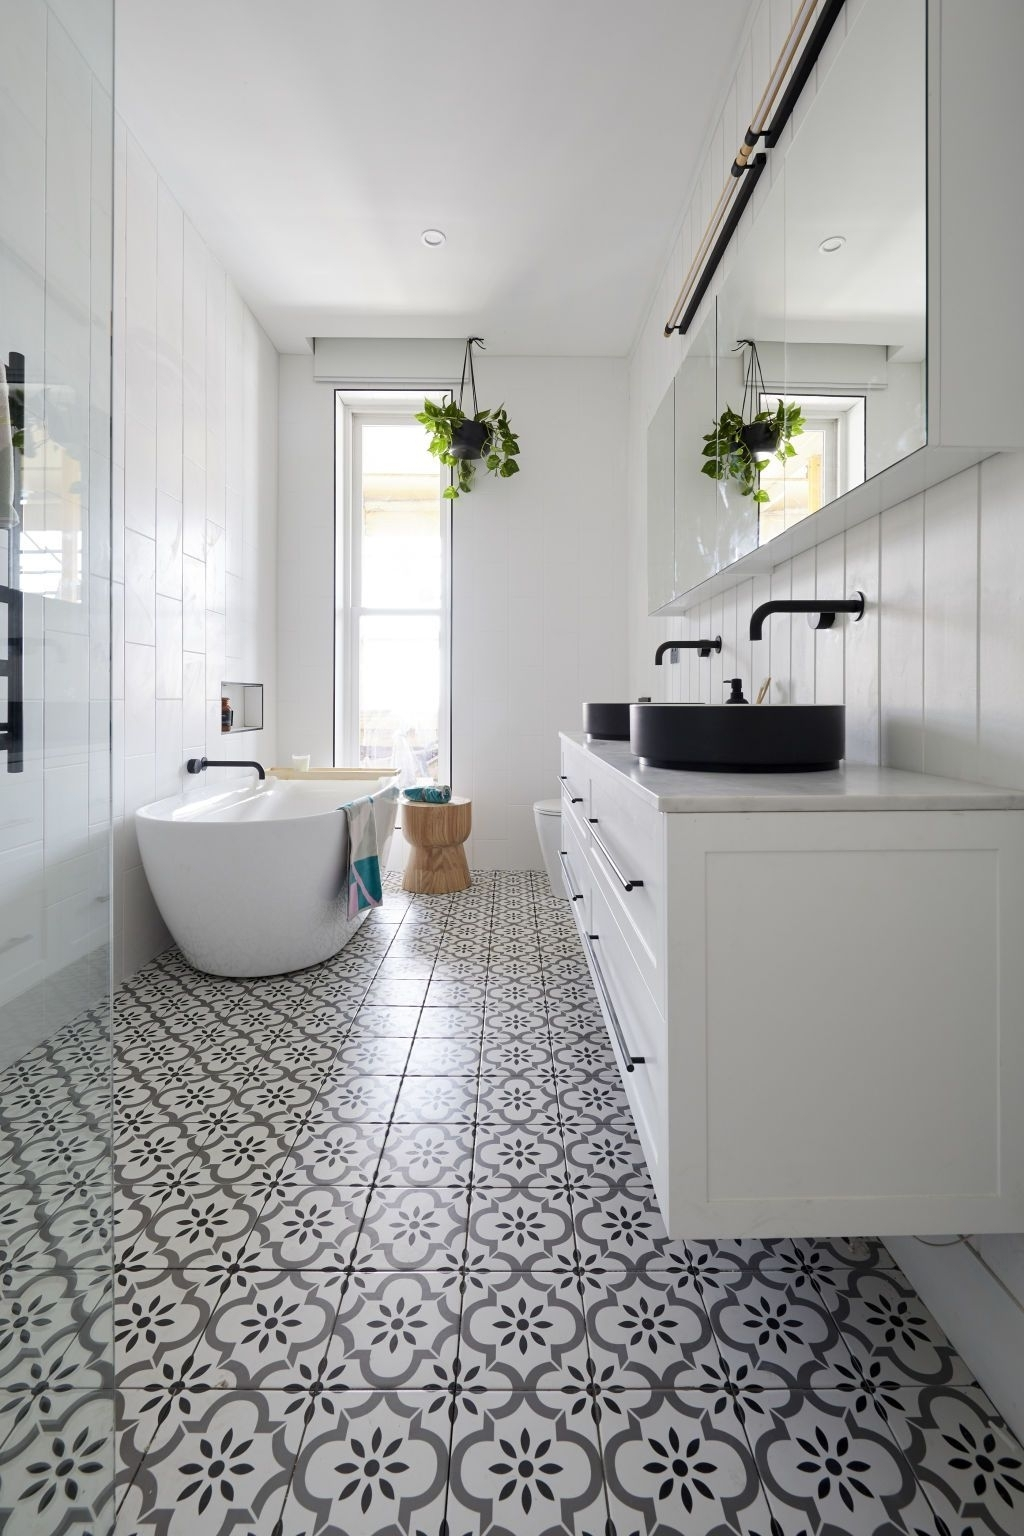 The Block 2019: Interior Designers Share Their Thoughts On 20+ Ensuite Bathroom 2019 Inspirations